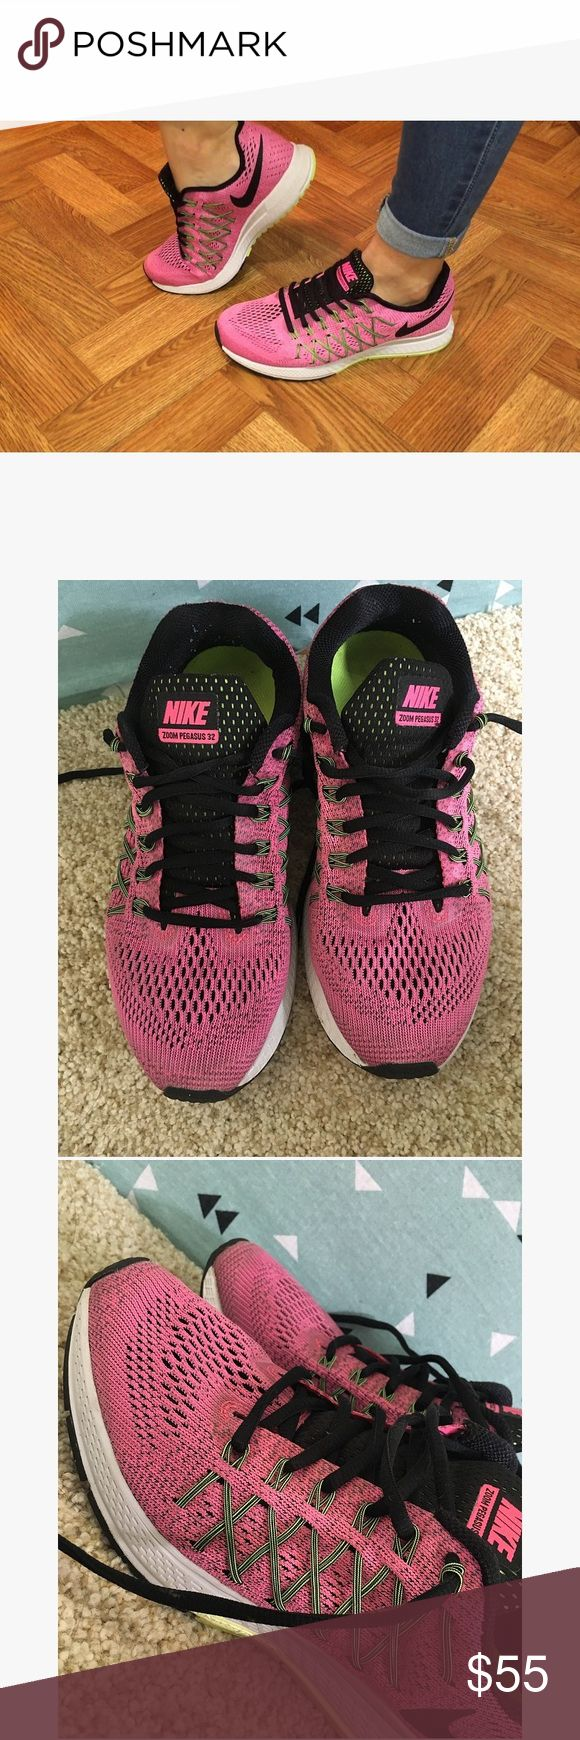 Nike zoom Pegasus 32 shoes Size 8. In great condition no holes or stains Nike Shoes Sneakers